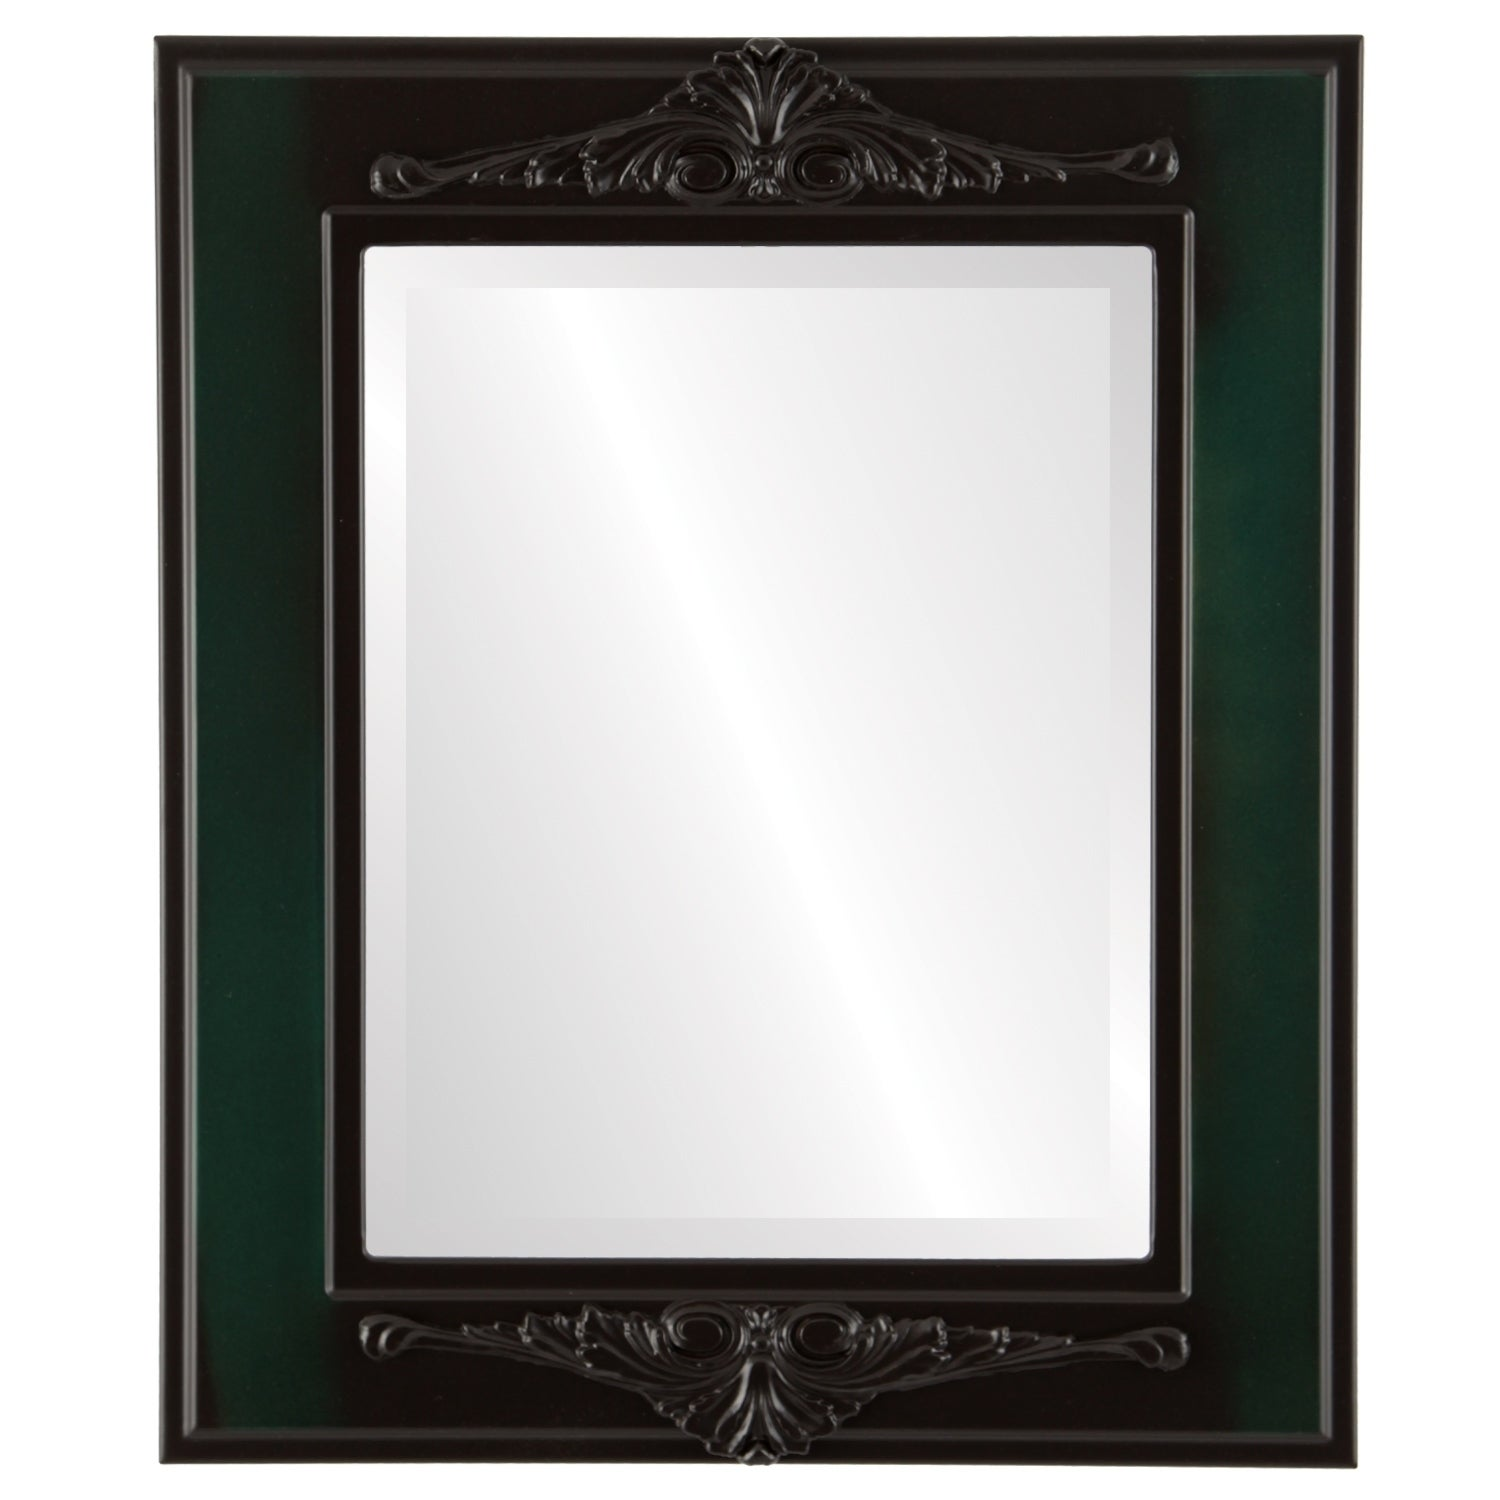 Ramino Framed Rectangle Mirror in Hunter Green - Green/Brown (25x29 - Medium (15-32 high))